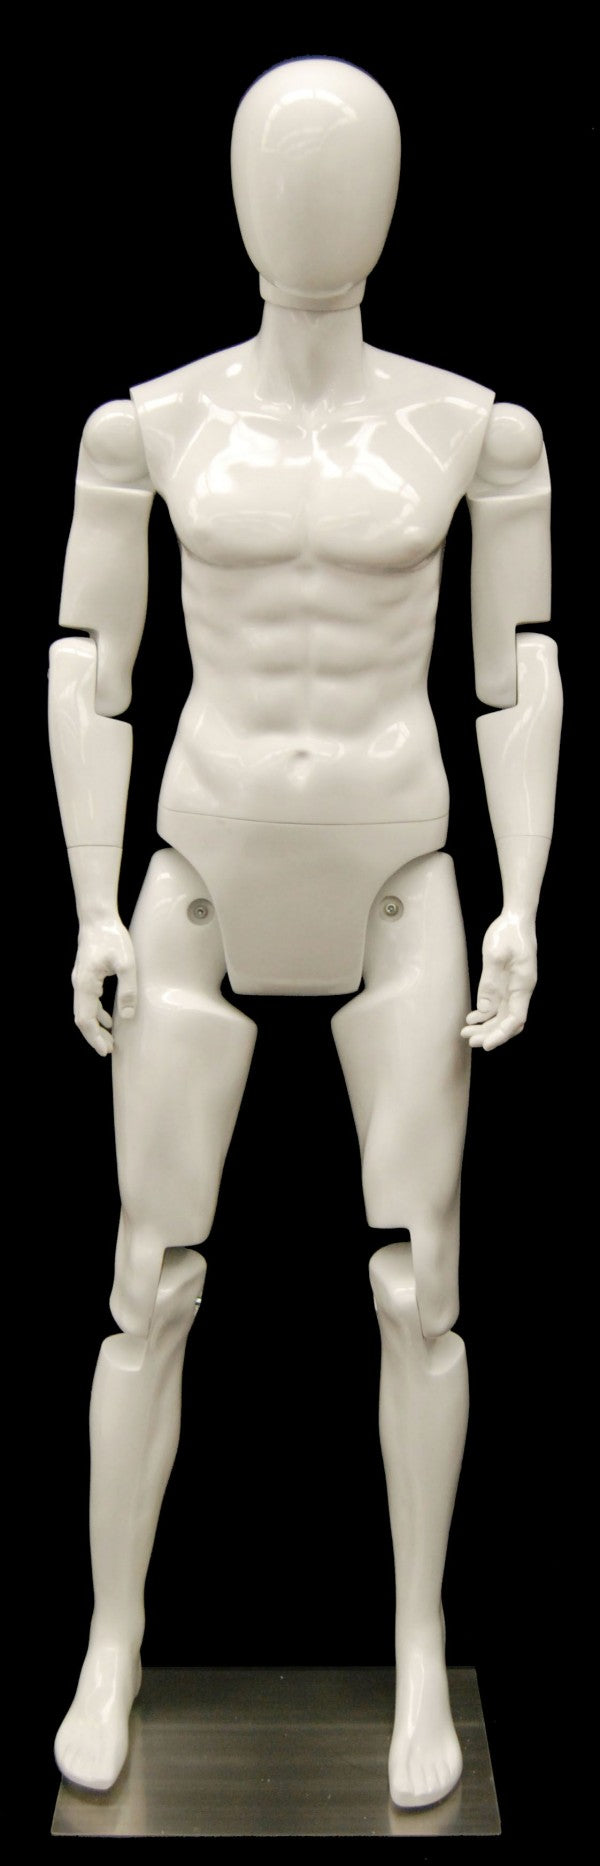 Rental Male Fully Posable Mannequin - Las Vegas Mannequins